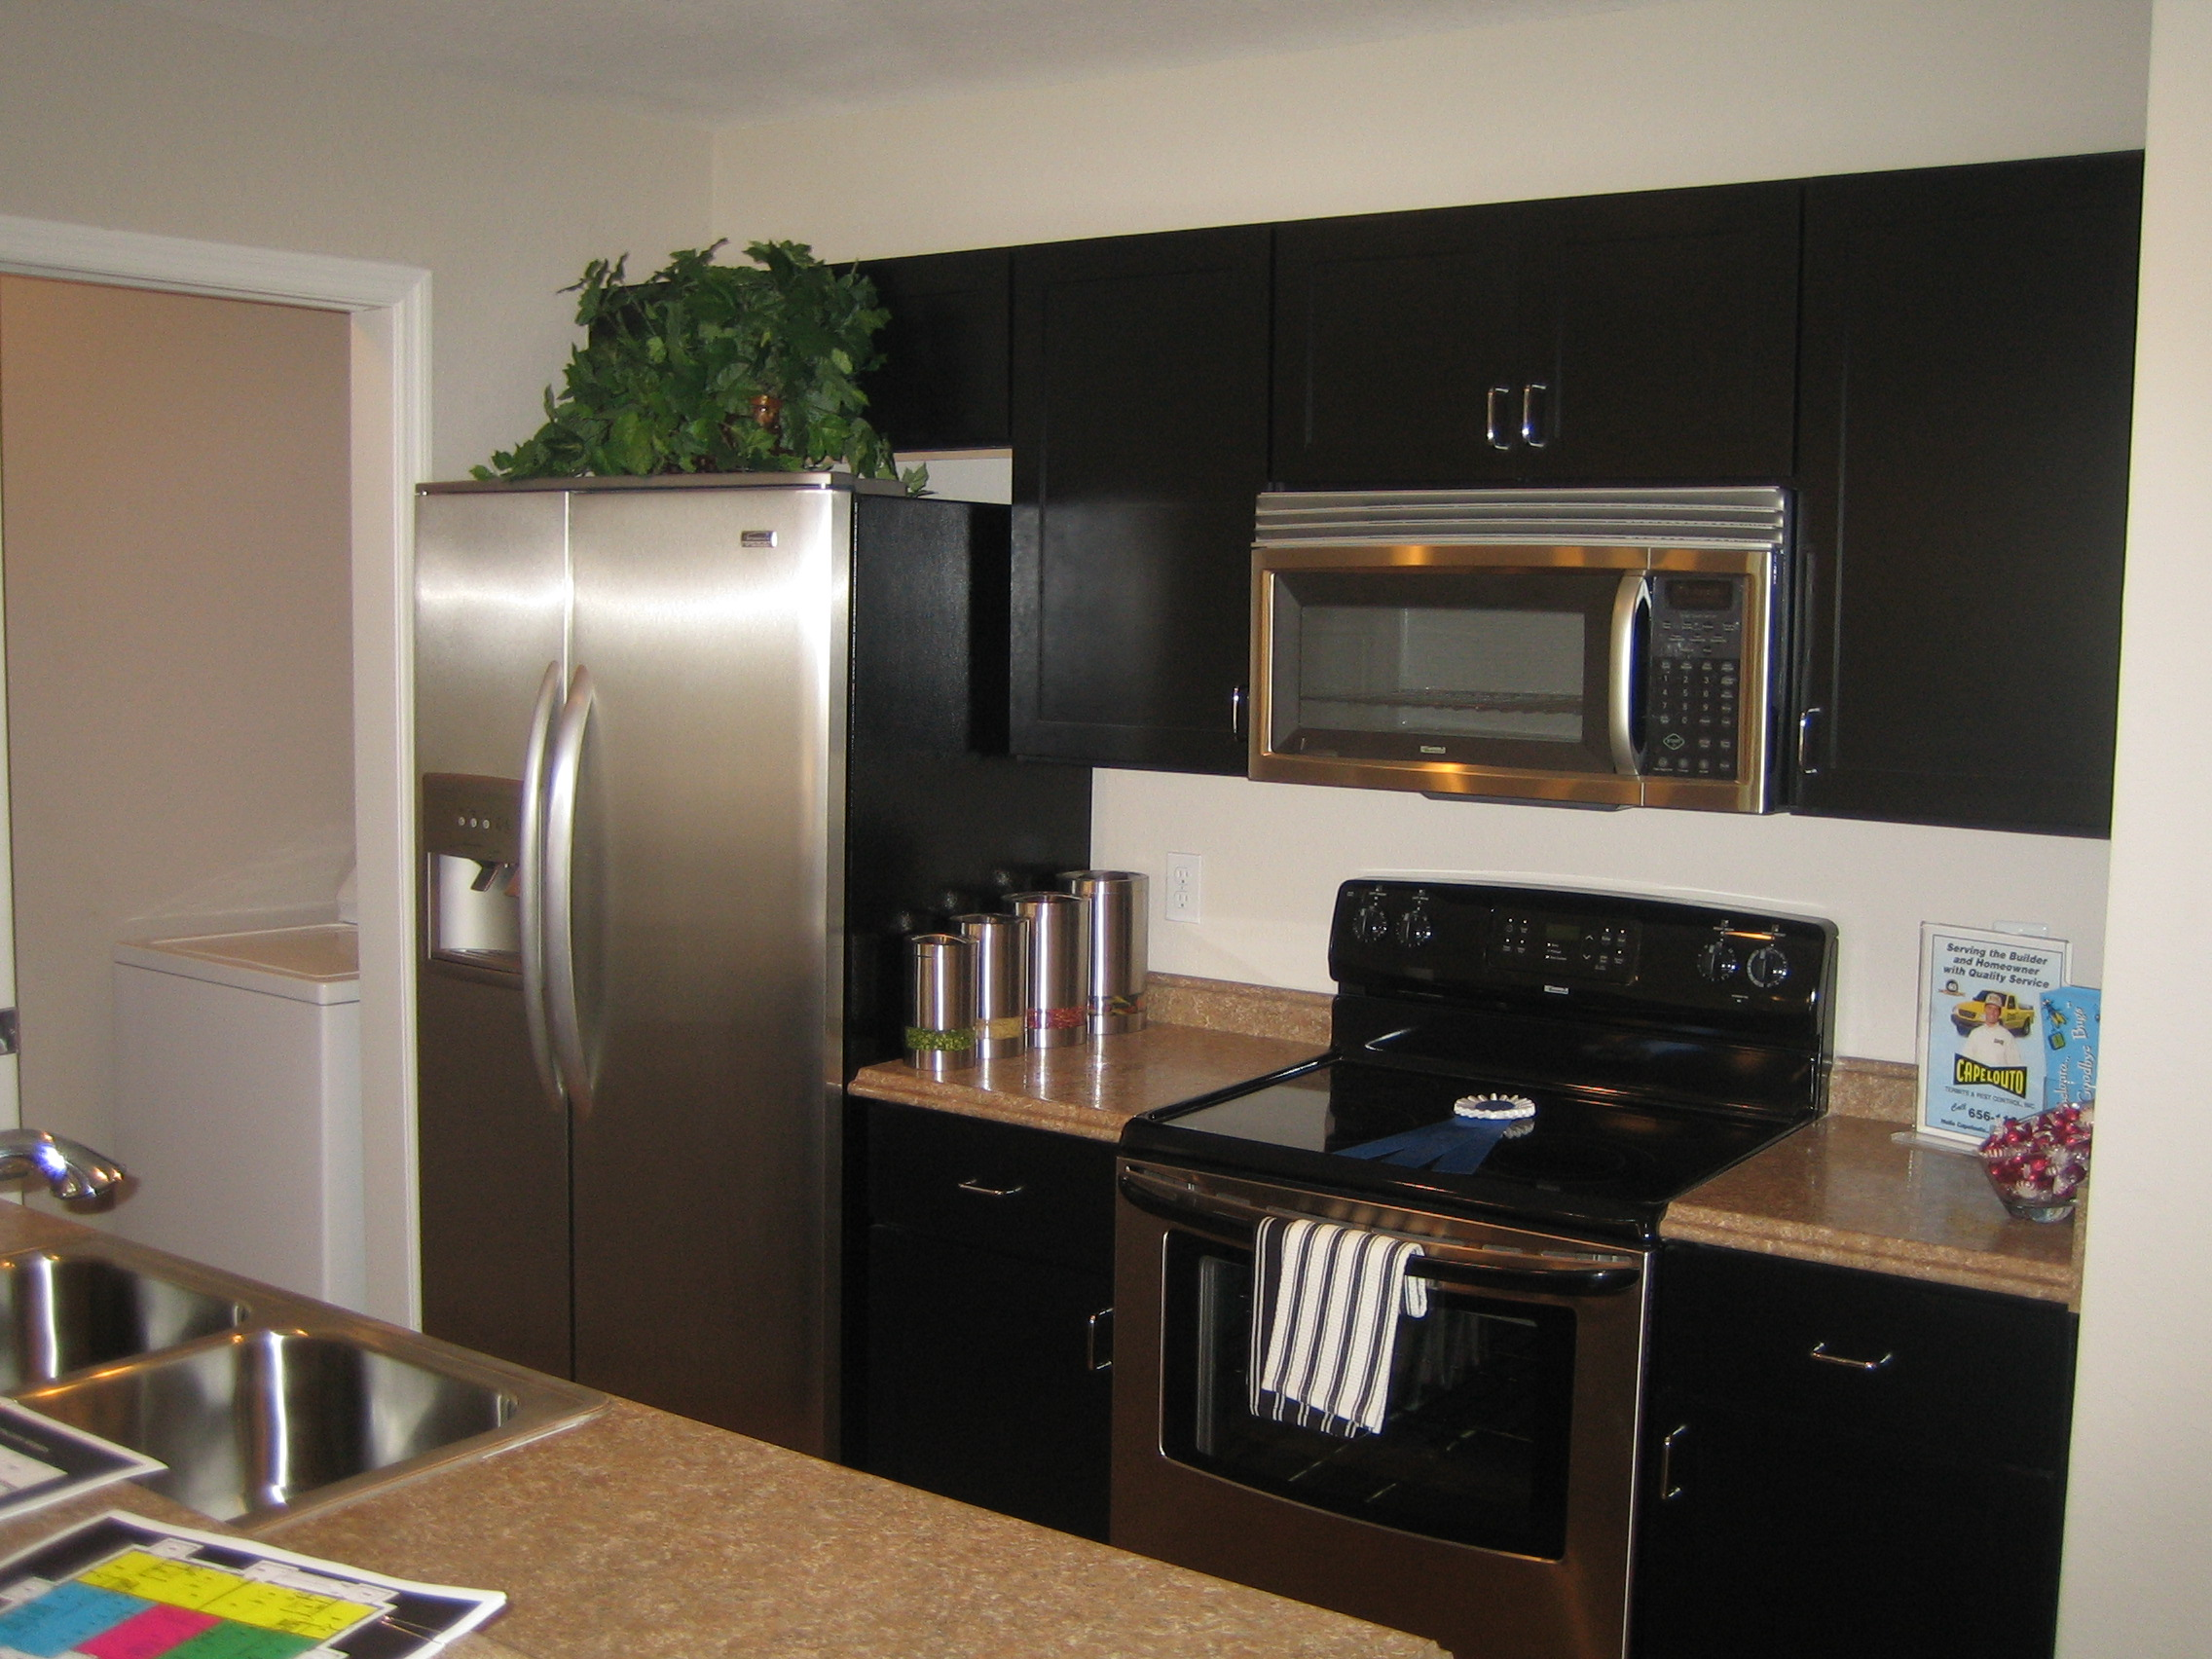 dean properties :: luxury student living at its best - tallahassee